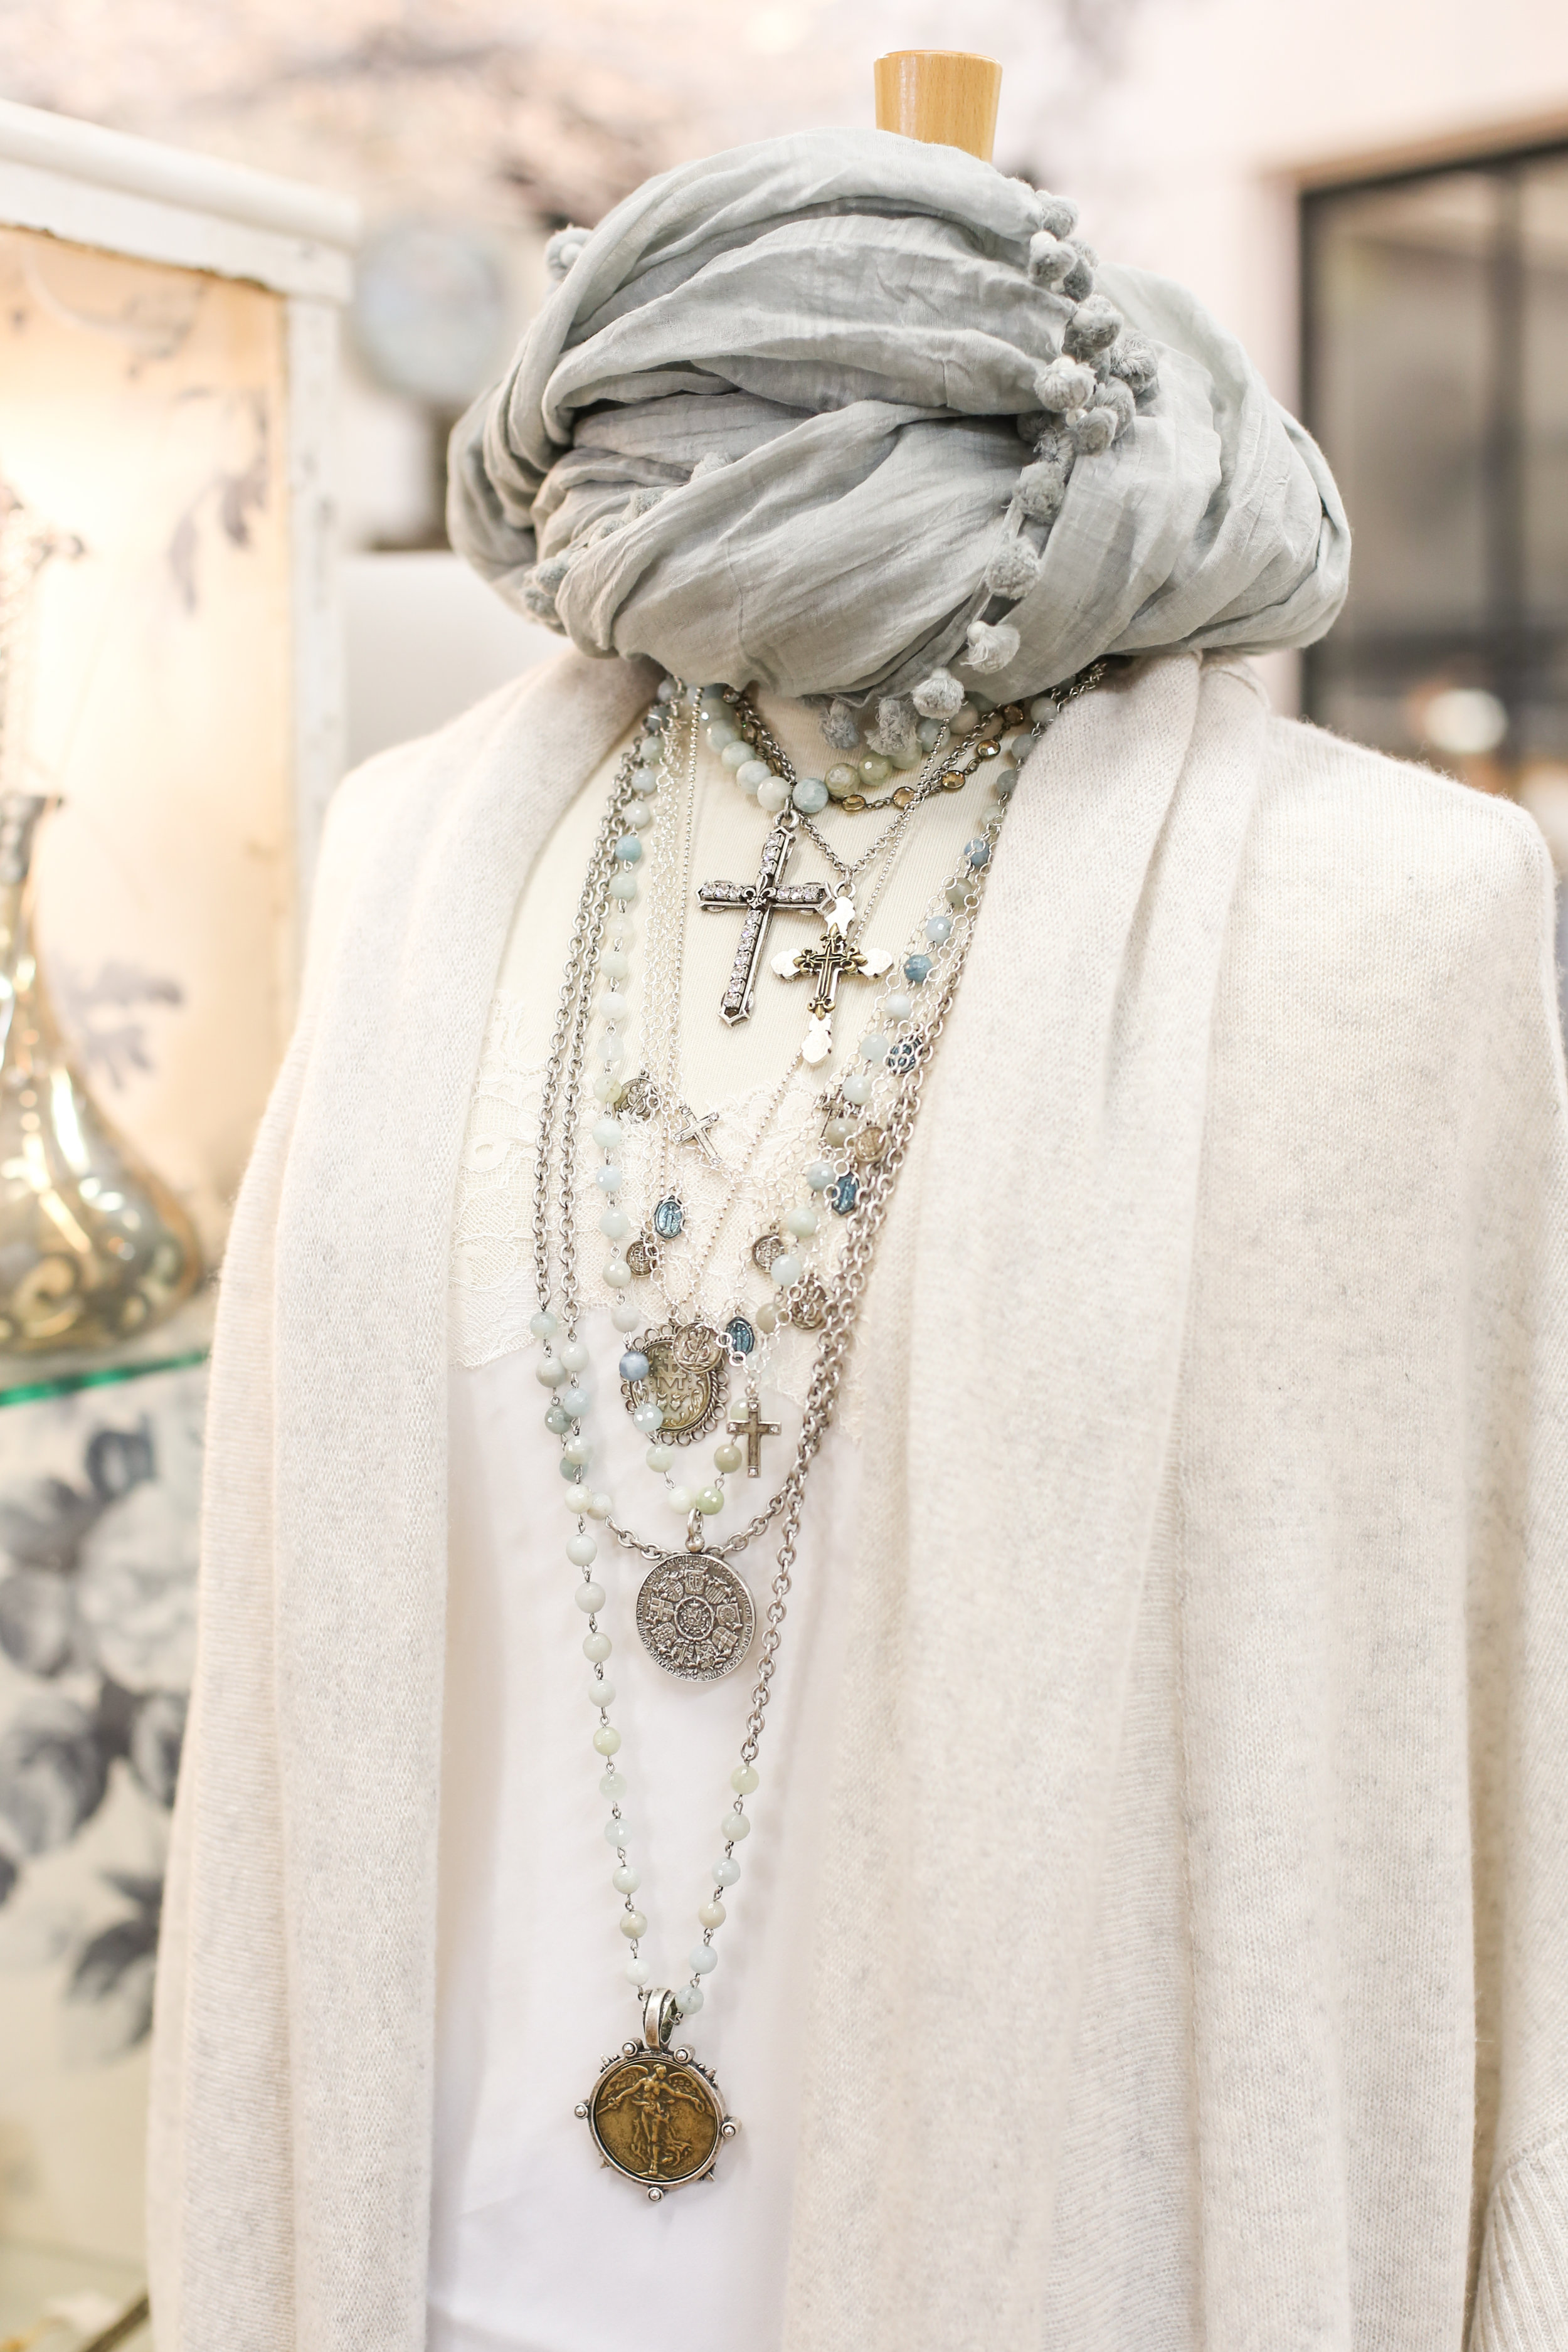 Chic styled ivory cardigan and accessories